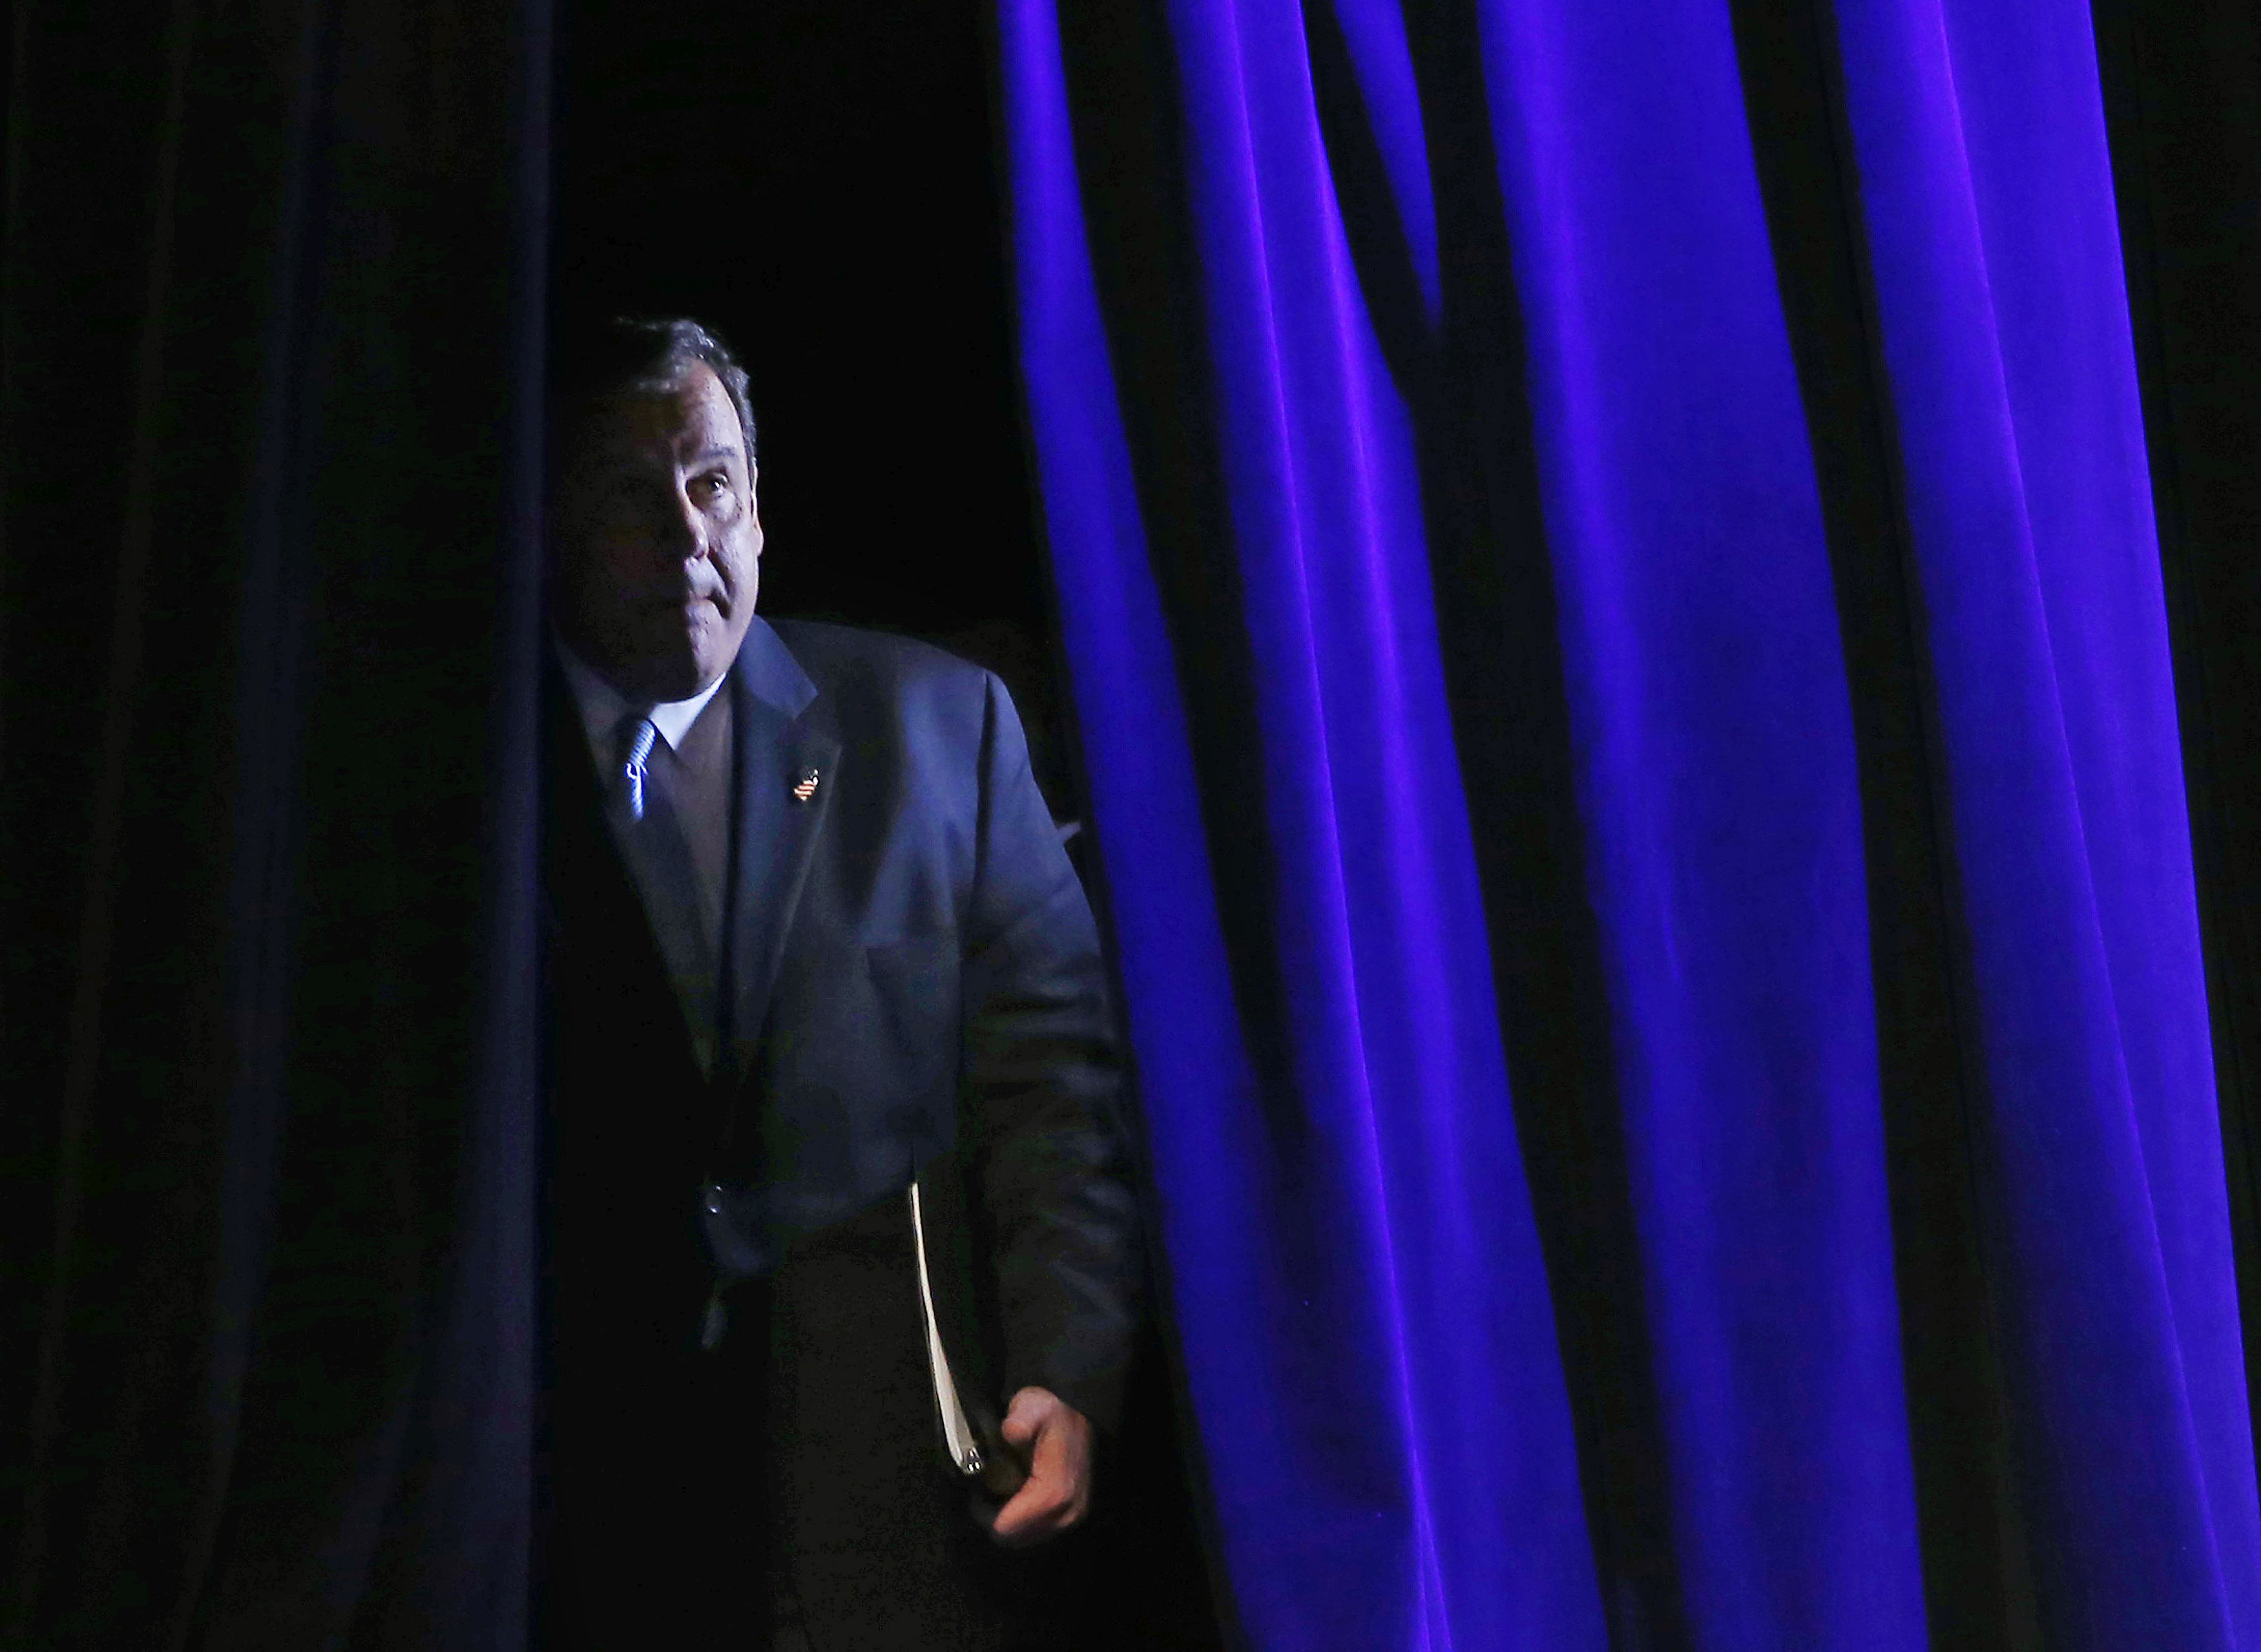 Governor of New Jersey Chris Christie arrives to speak at the Freedom Summit in Des Moines, Iowa on Jan. 24, 2015.